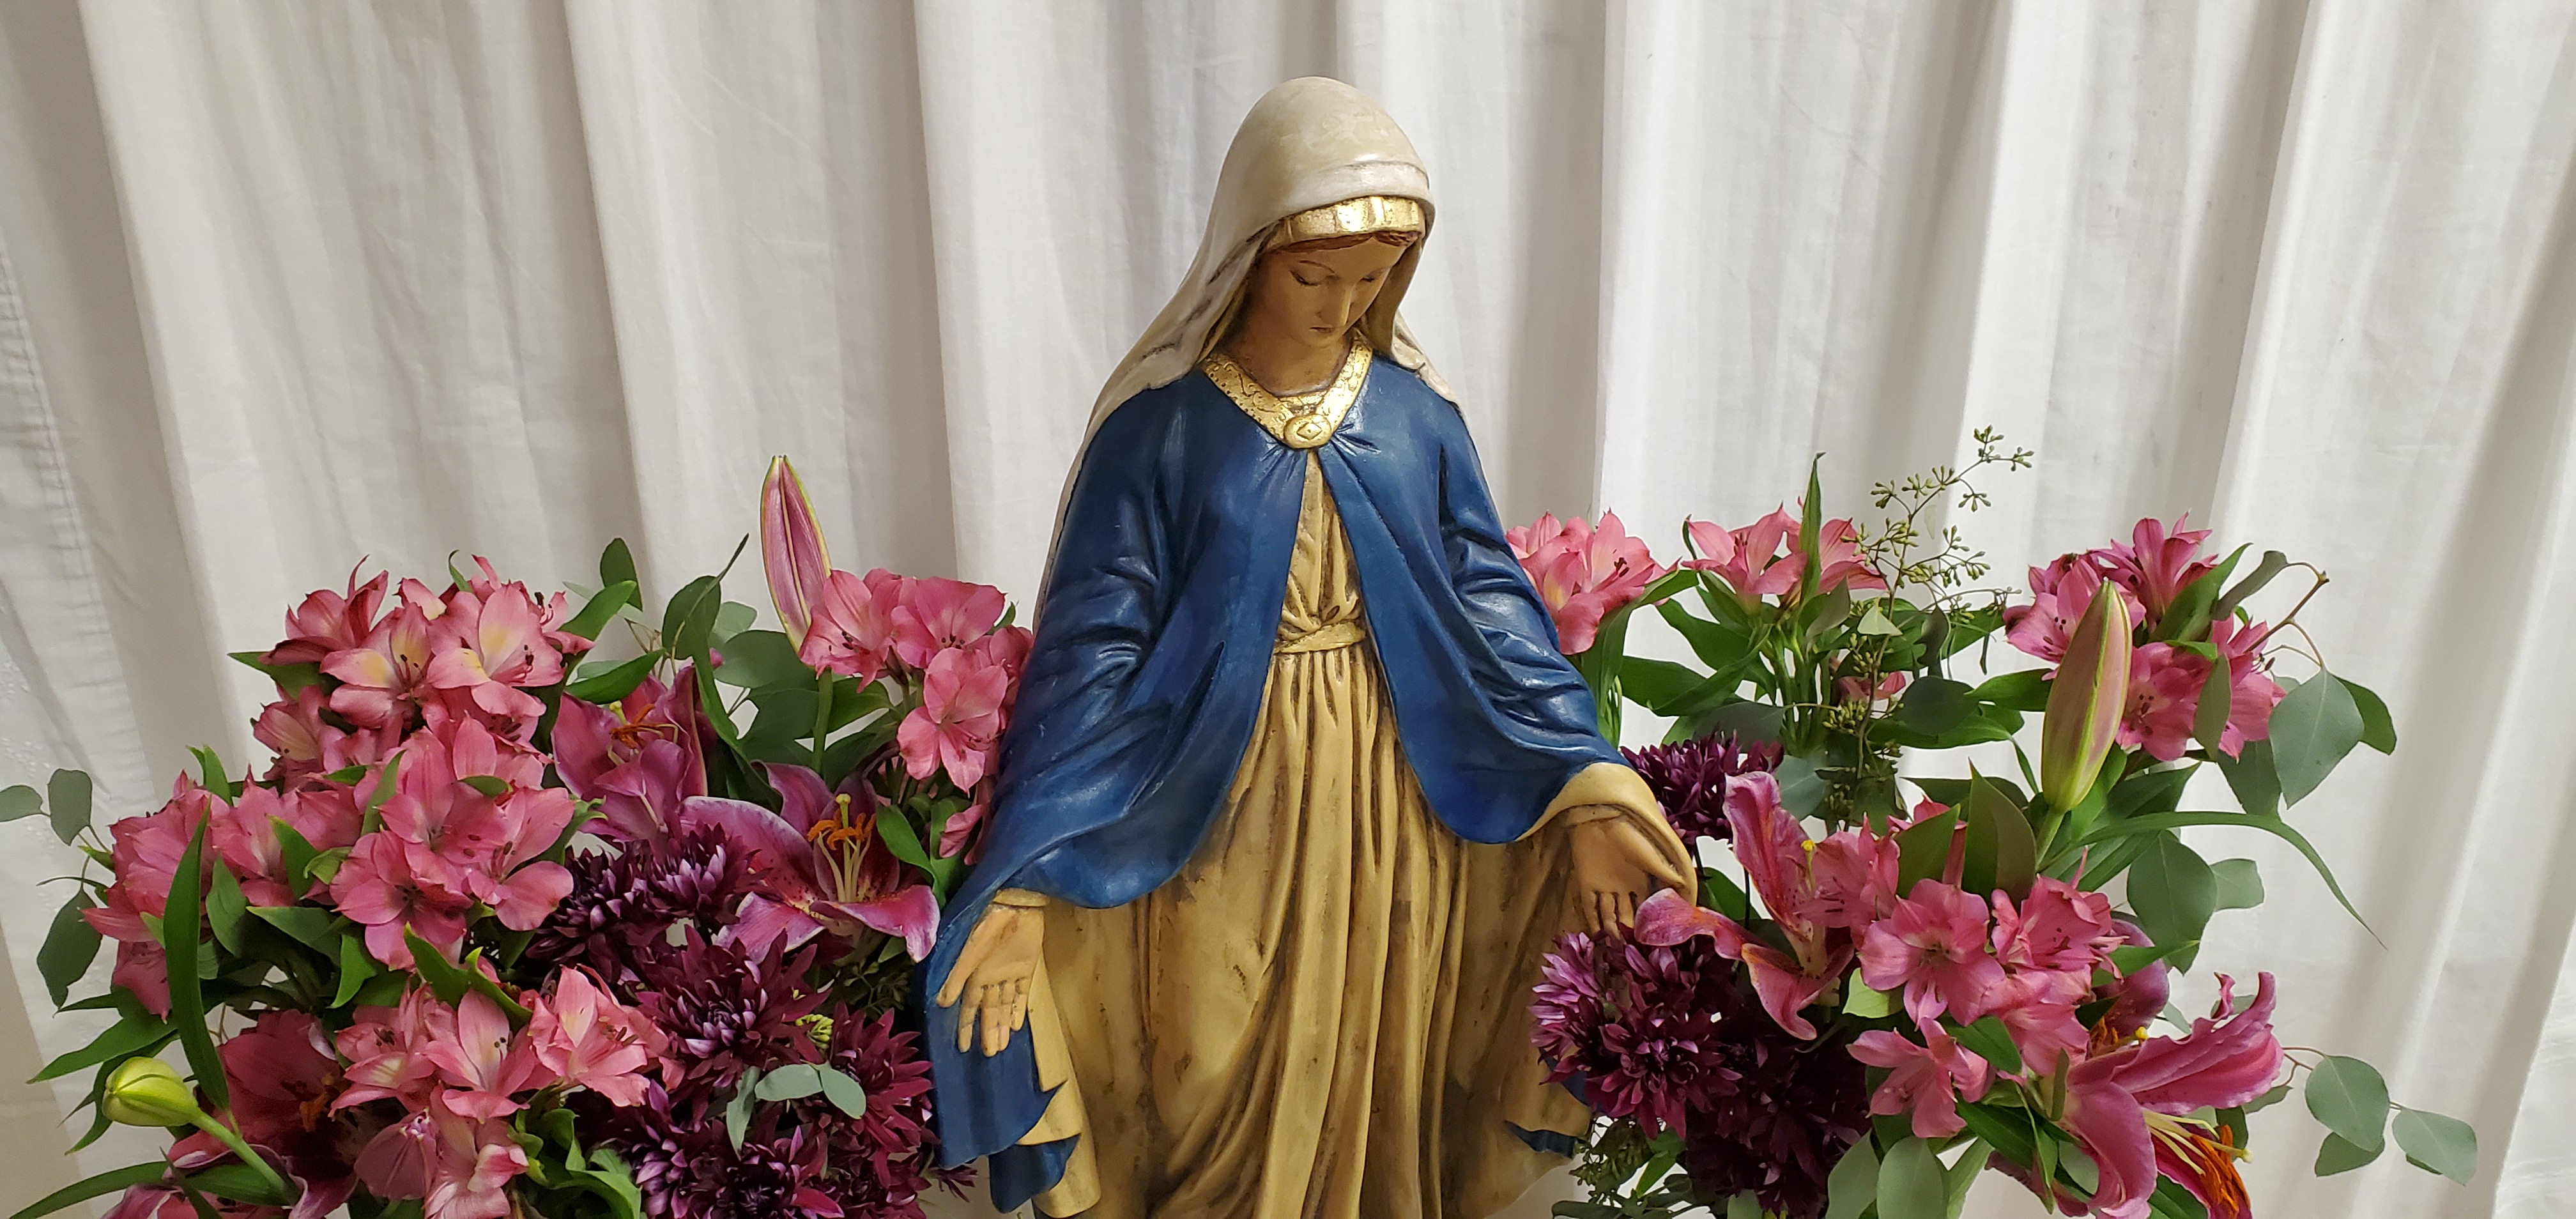 Our Blessed Mother